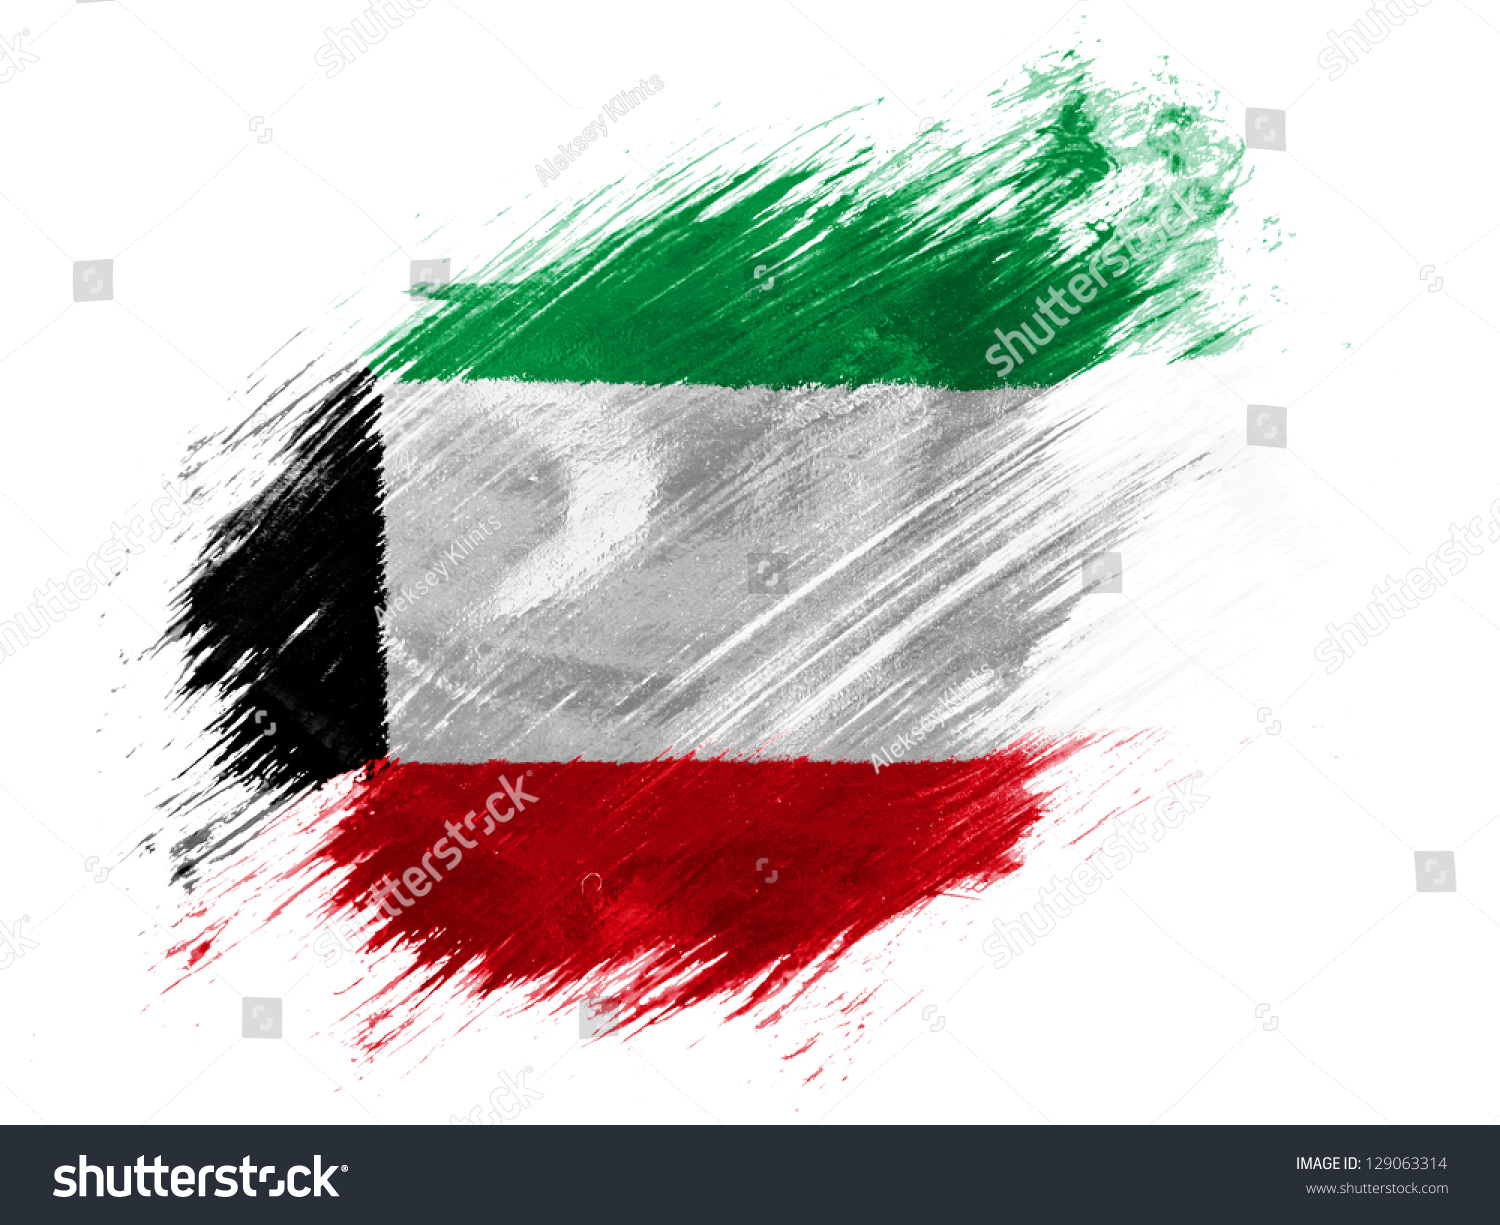 kuwait kuwaiti flag painted brush on stock illustration patriotic clipart patriotic clip art background